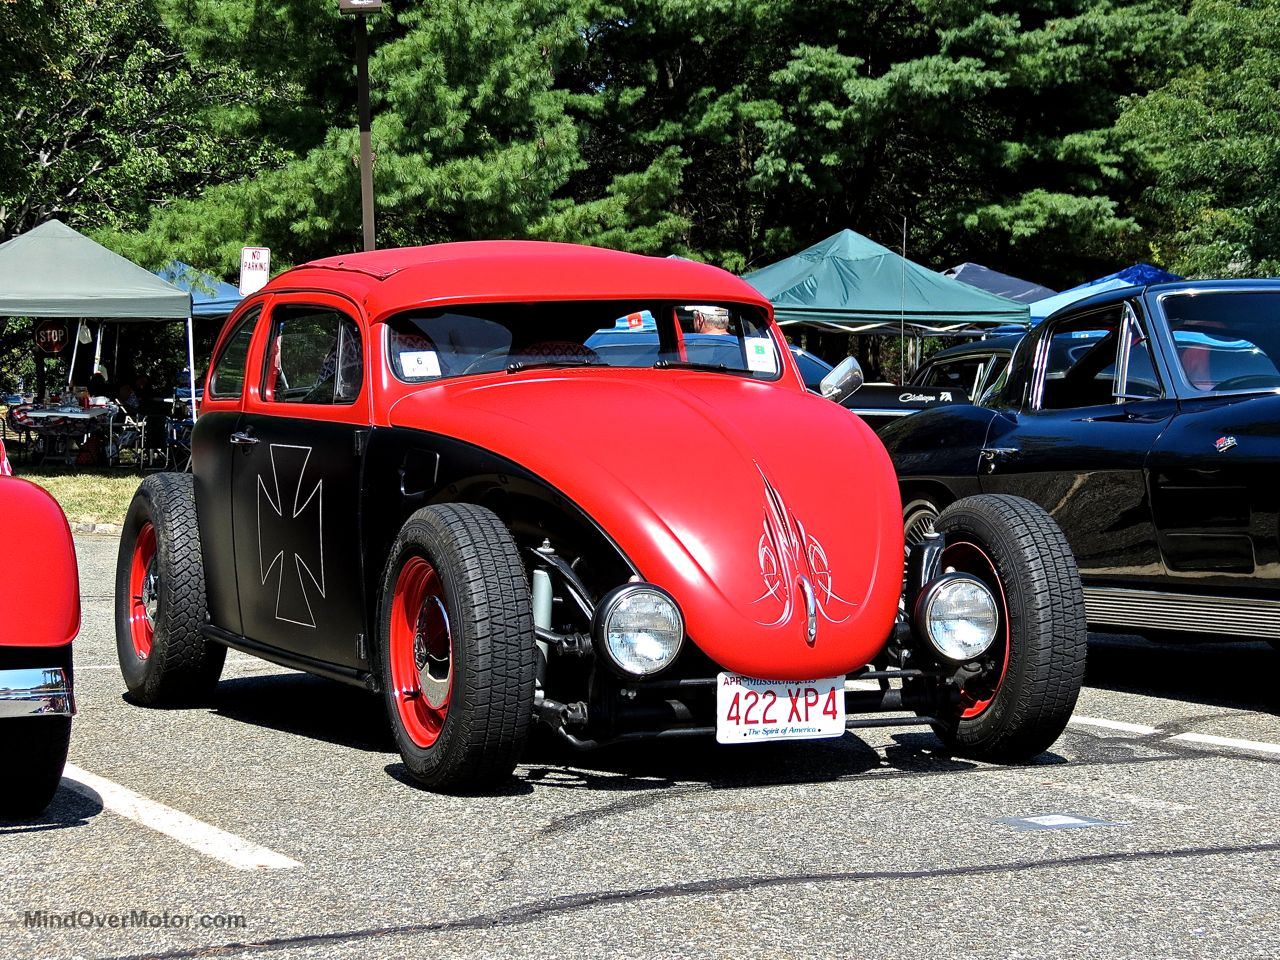 Hot Rod VW Beetle Lead East Front